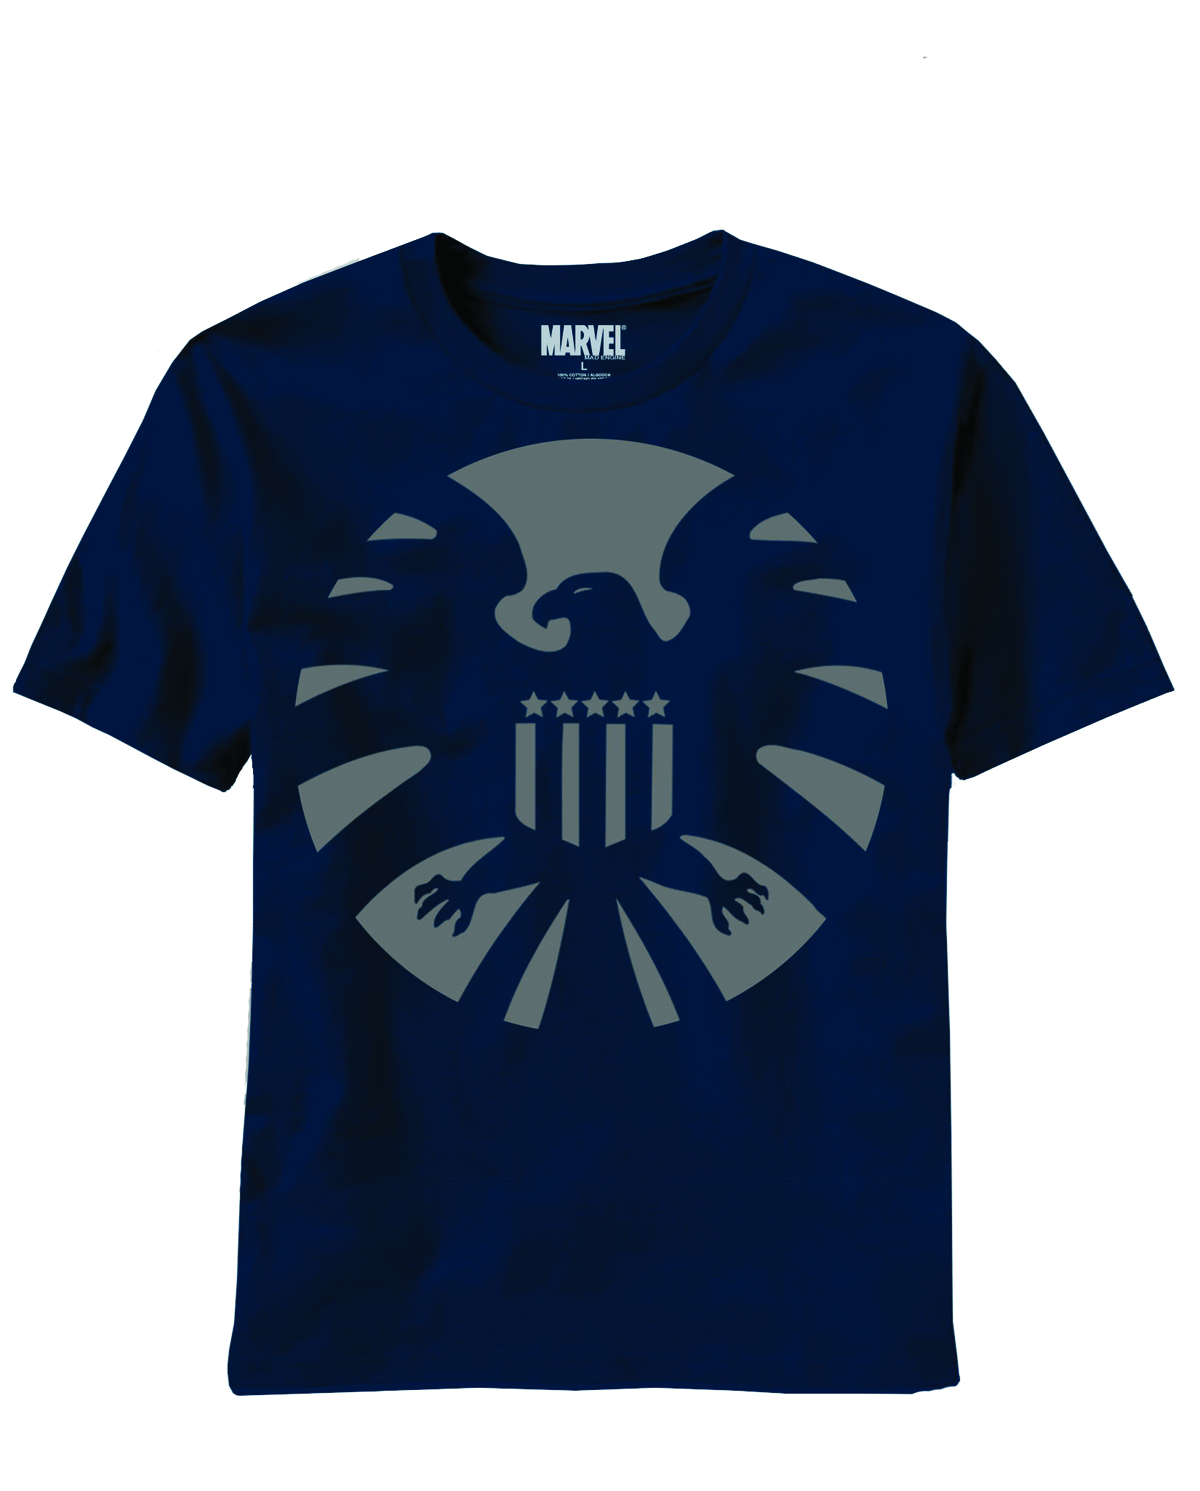 SHIELD NIGHT SHIELD NAVY T/S XL